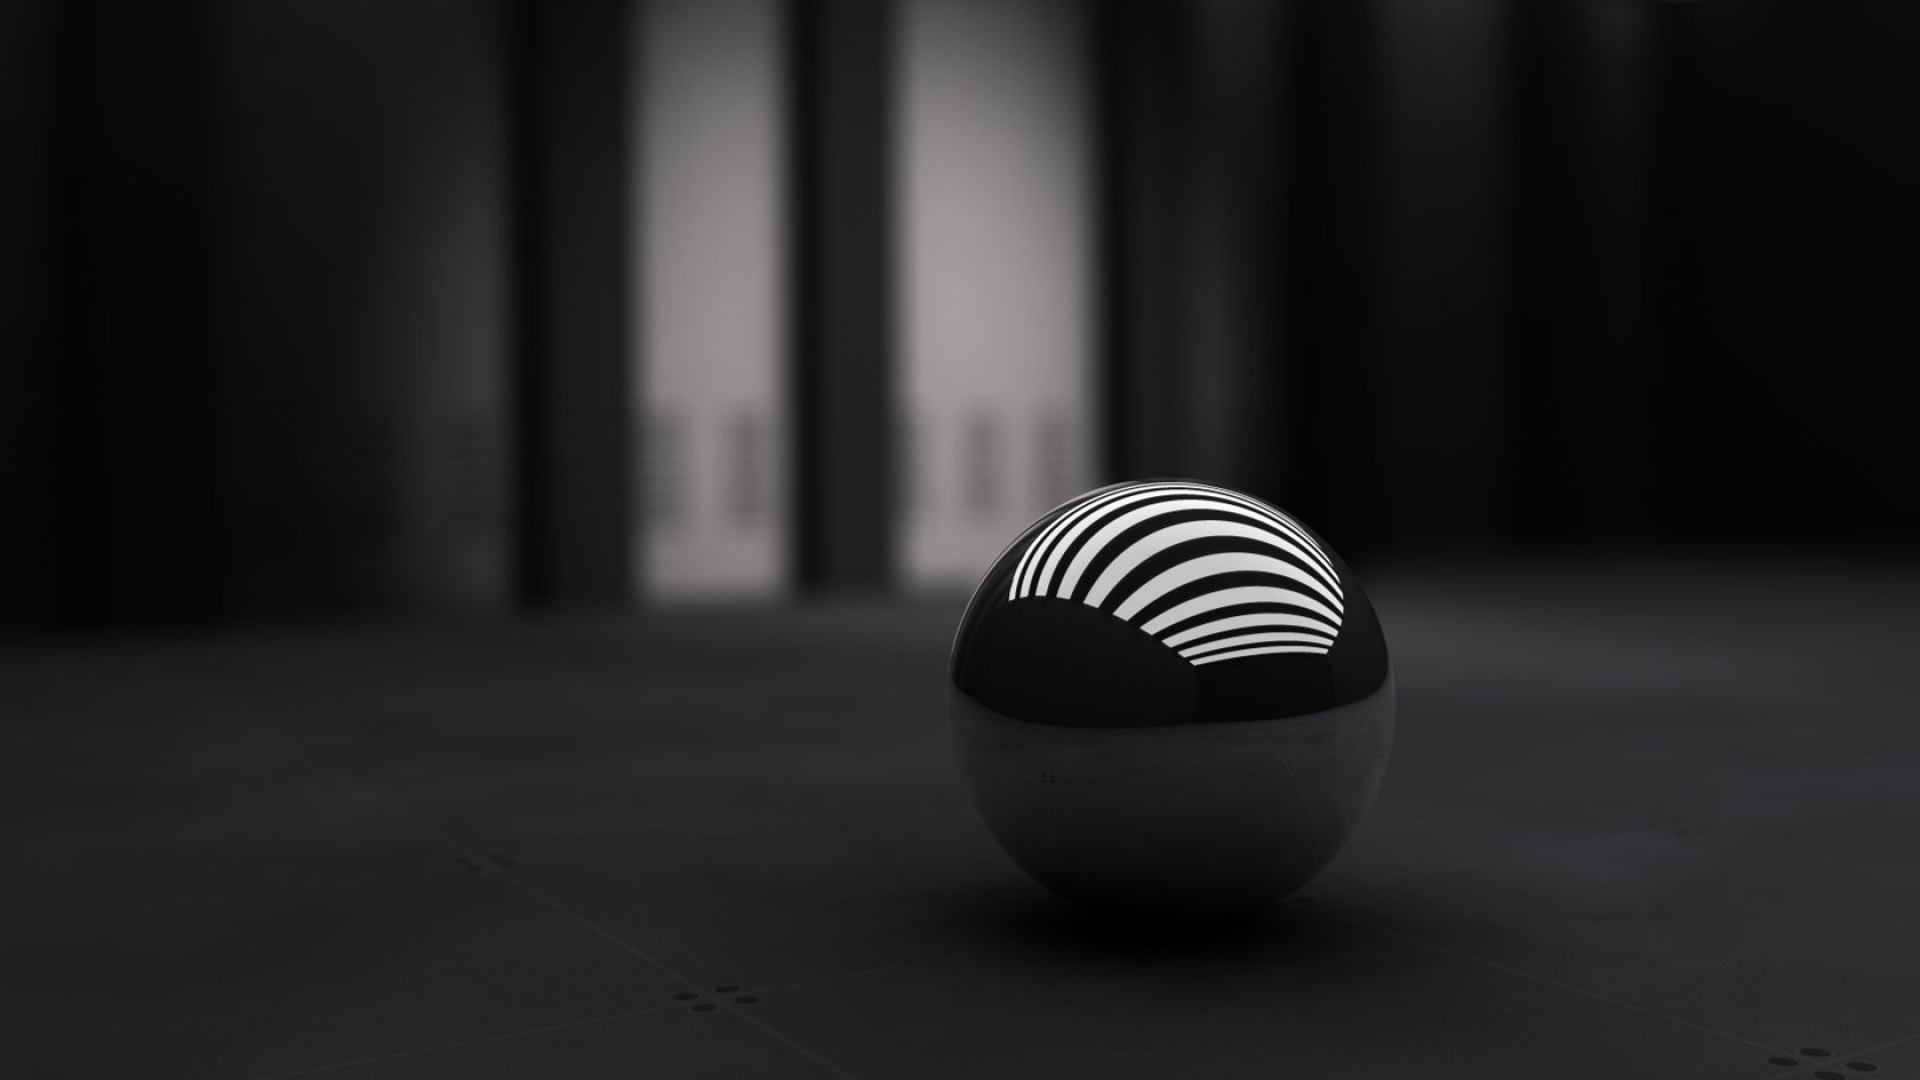 Download Wallpaper 1920x1080 Black Ball Band White Full Hd